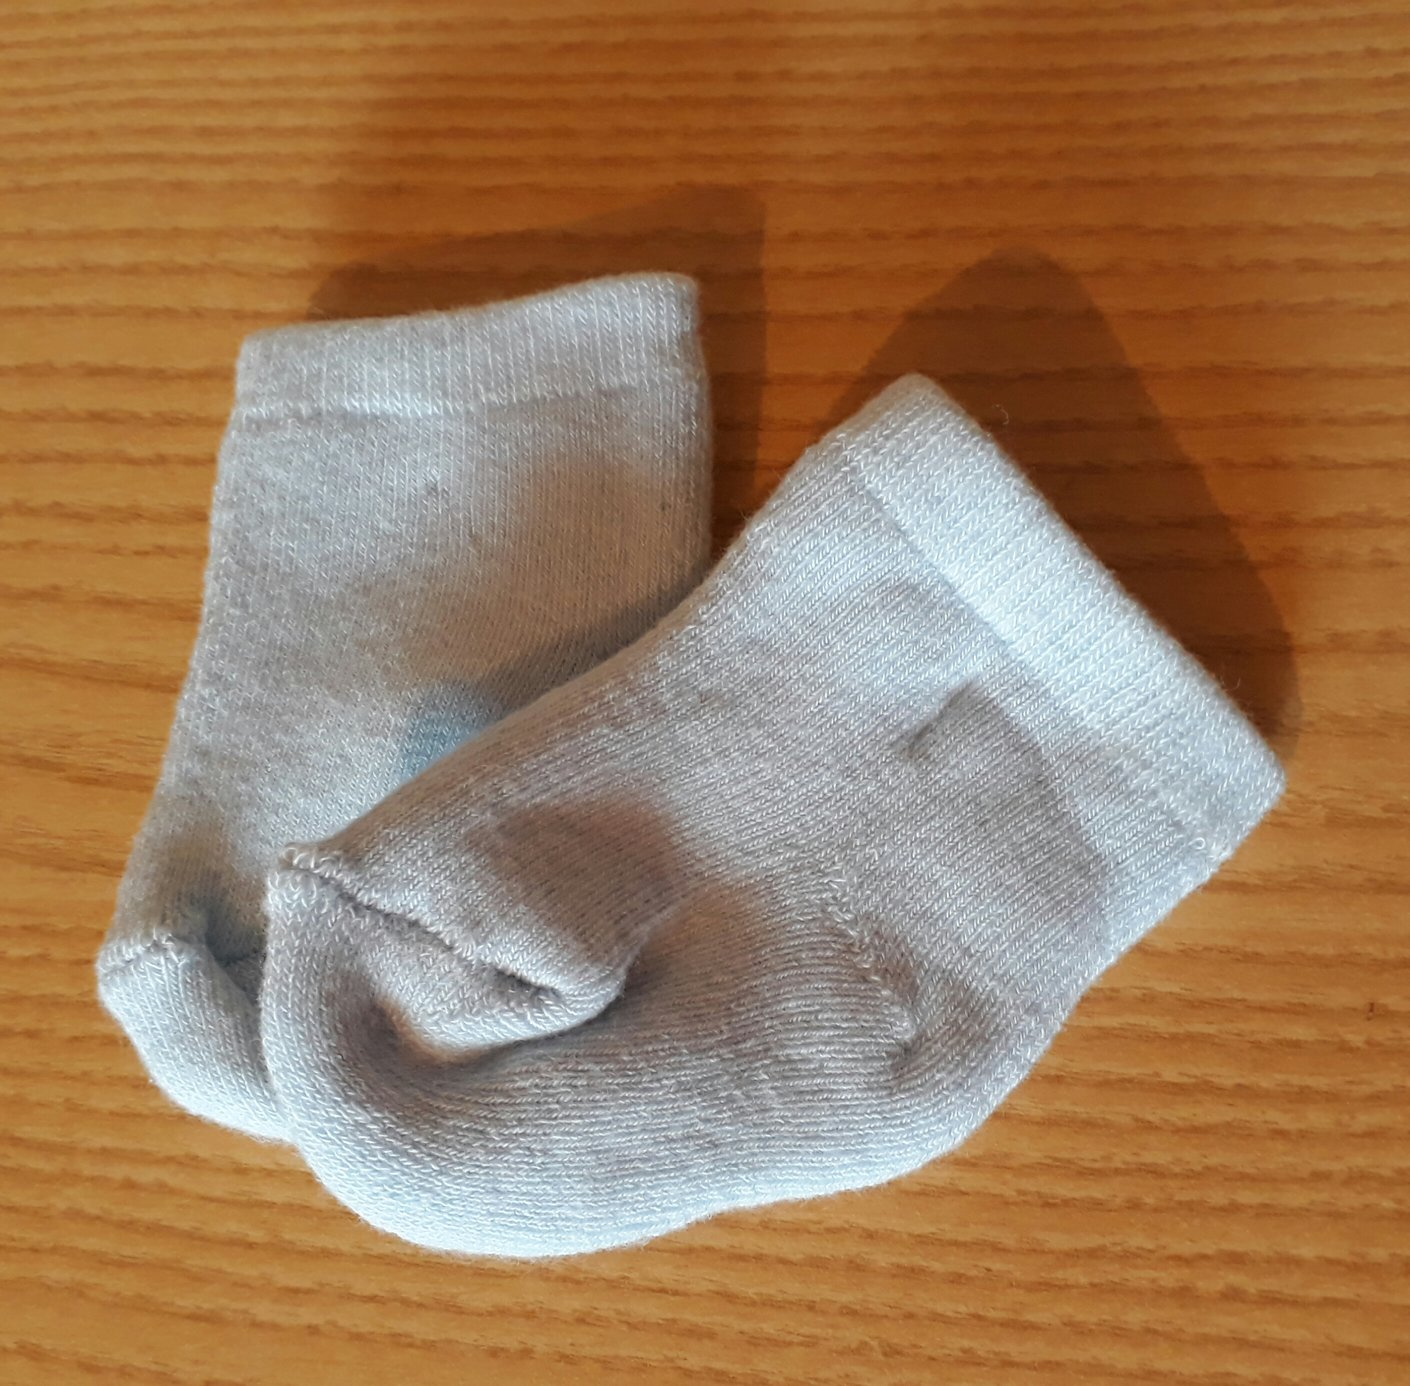 premature baby clothes uk smallest tiny socks WINTER WARMERS blue 3-5lb